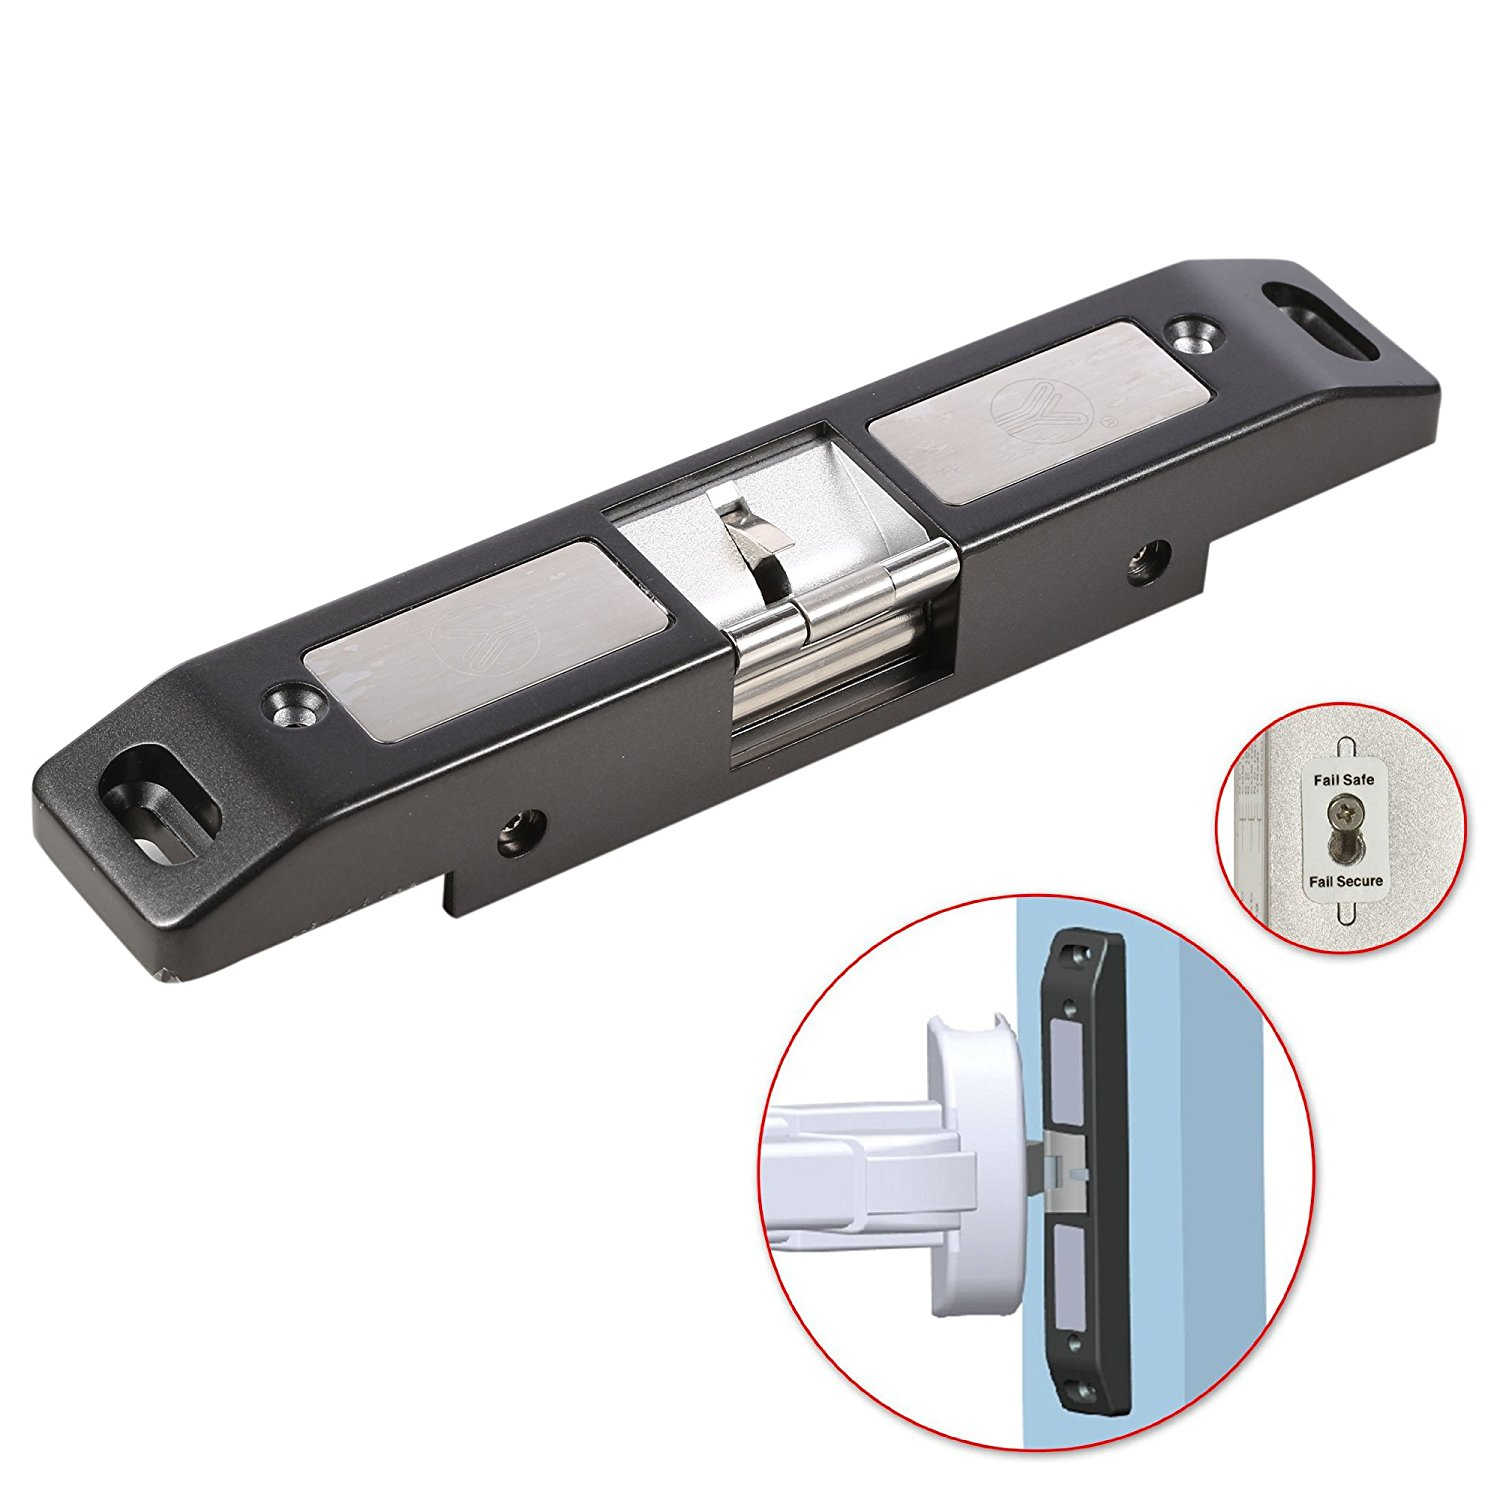 Electric Strike Lock NC/NO Mode For Push Bar Rod Fire Exit Device Emergency Door Access Control